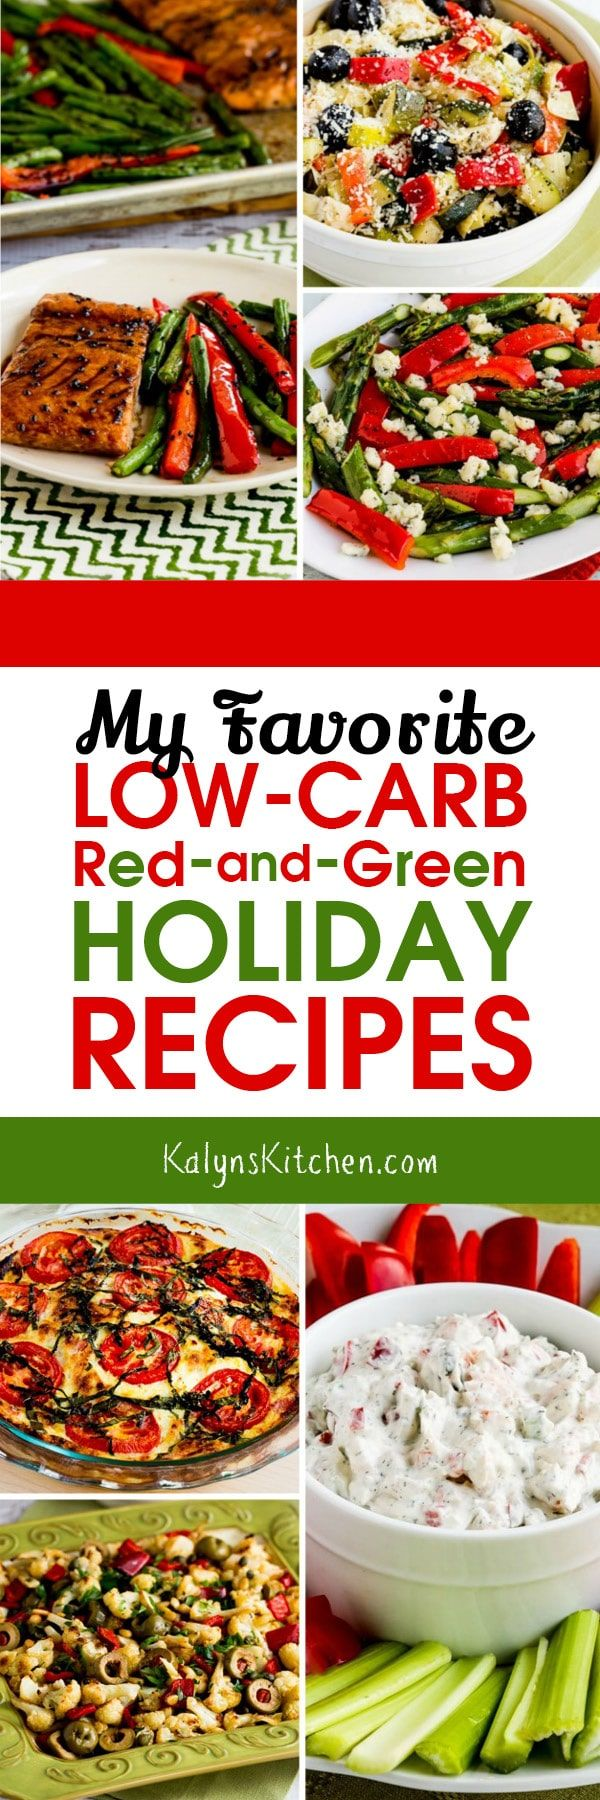 It's always harder to stick to a carb-conscious eating plan during the holidays, but having festive dishes that are red-and-green can help, so here are My Favorite Low-Carb Red-and-Green Recipes for Christmas! These recipes are also gluten-free and low-glycemic, and most of them are Keto as well! [found on KalynsKitchen.com] #LowCarbRecipes #LowCarbHolidayRecipes #LowCarbRedAndGreenRecipes #RedAndGreenRecipes #HolidayRecipes